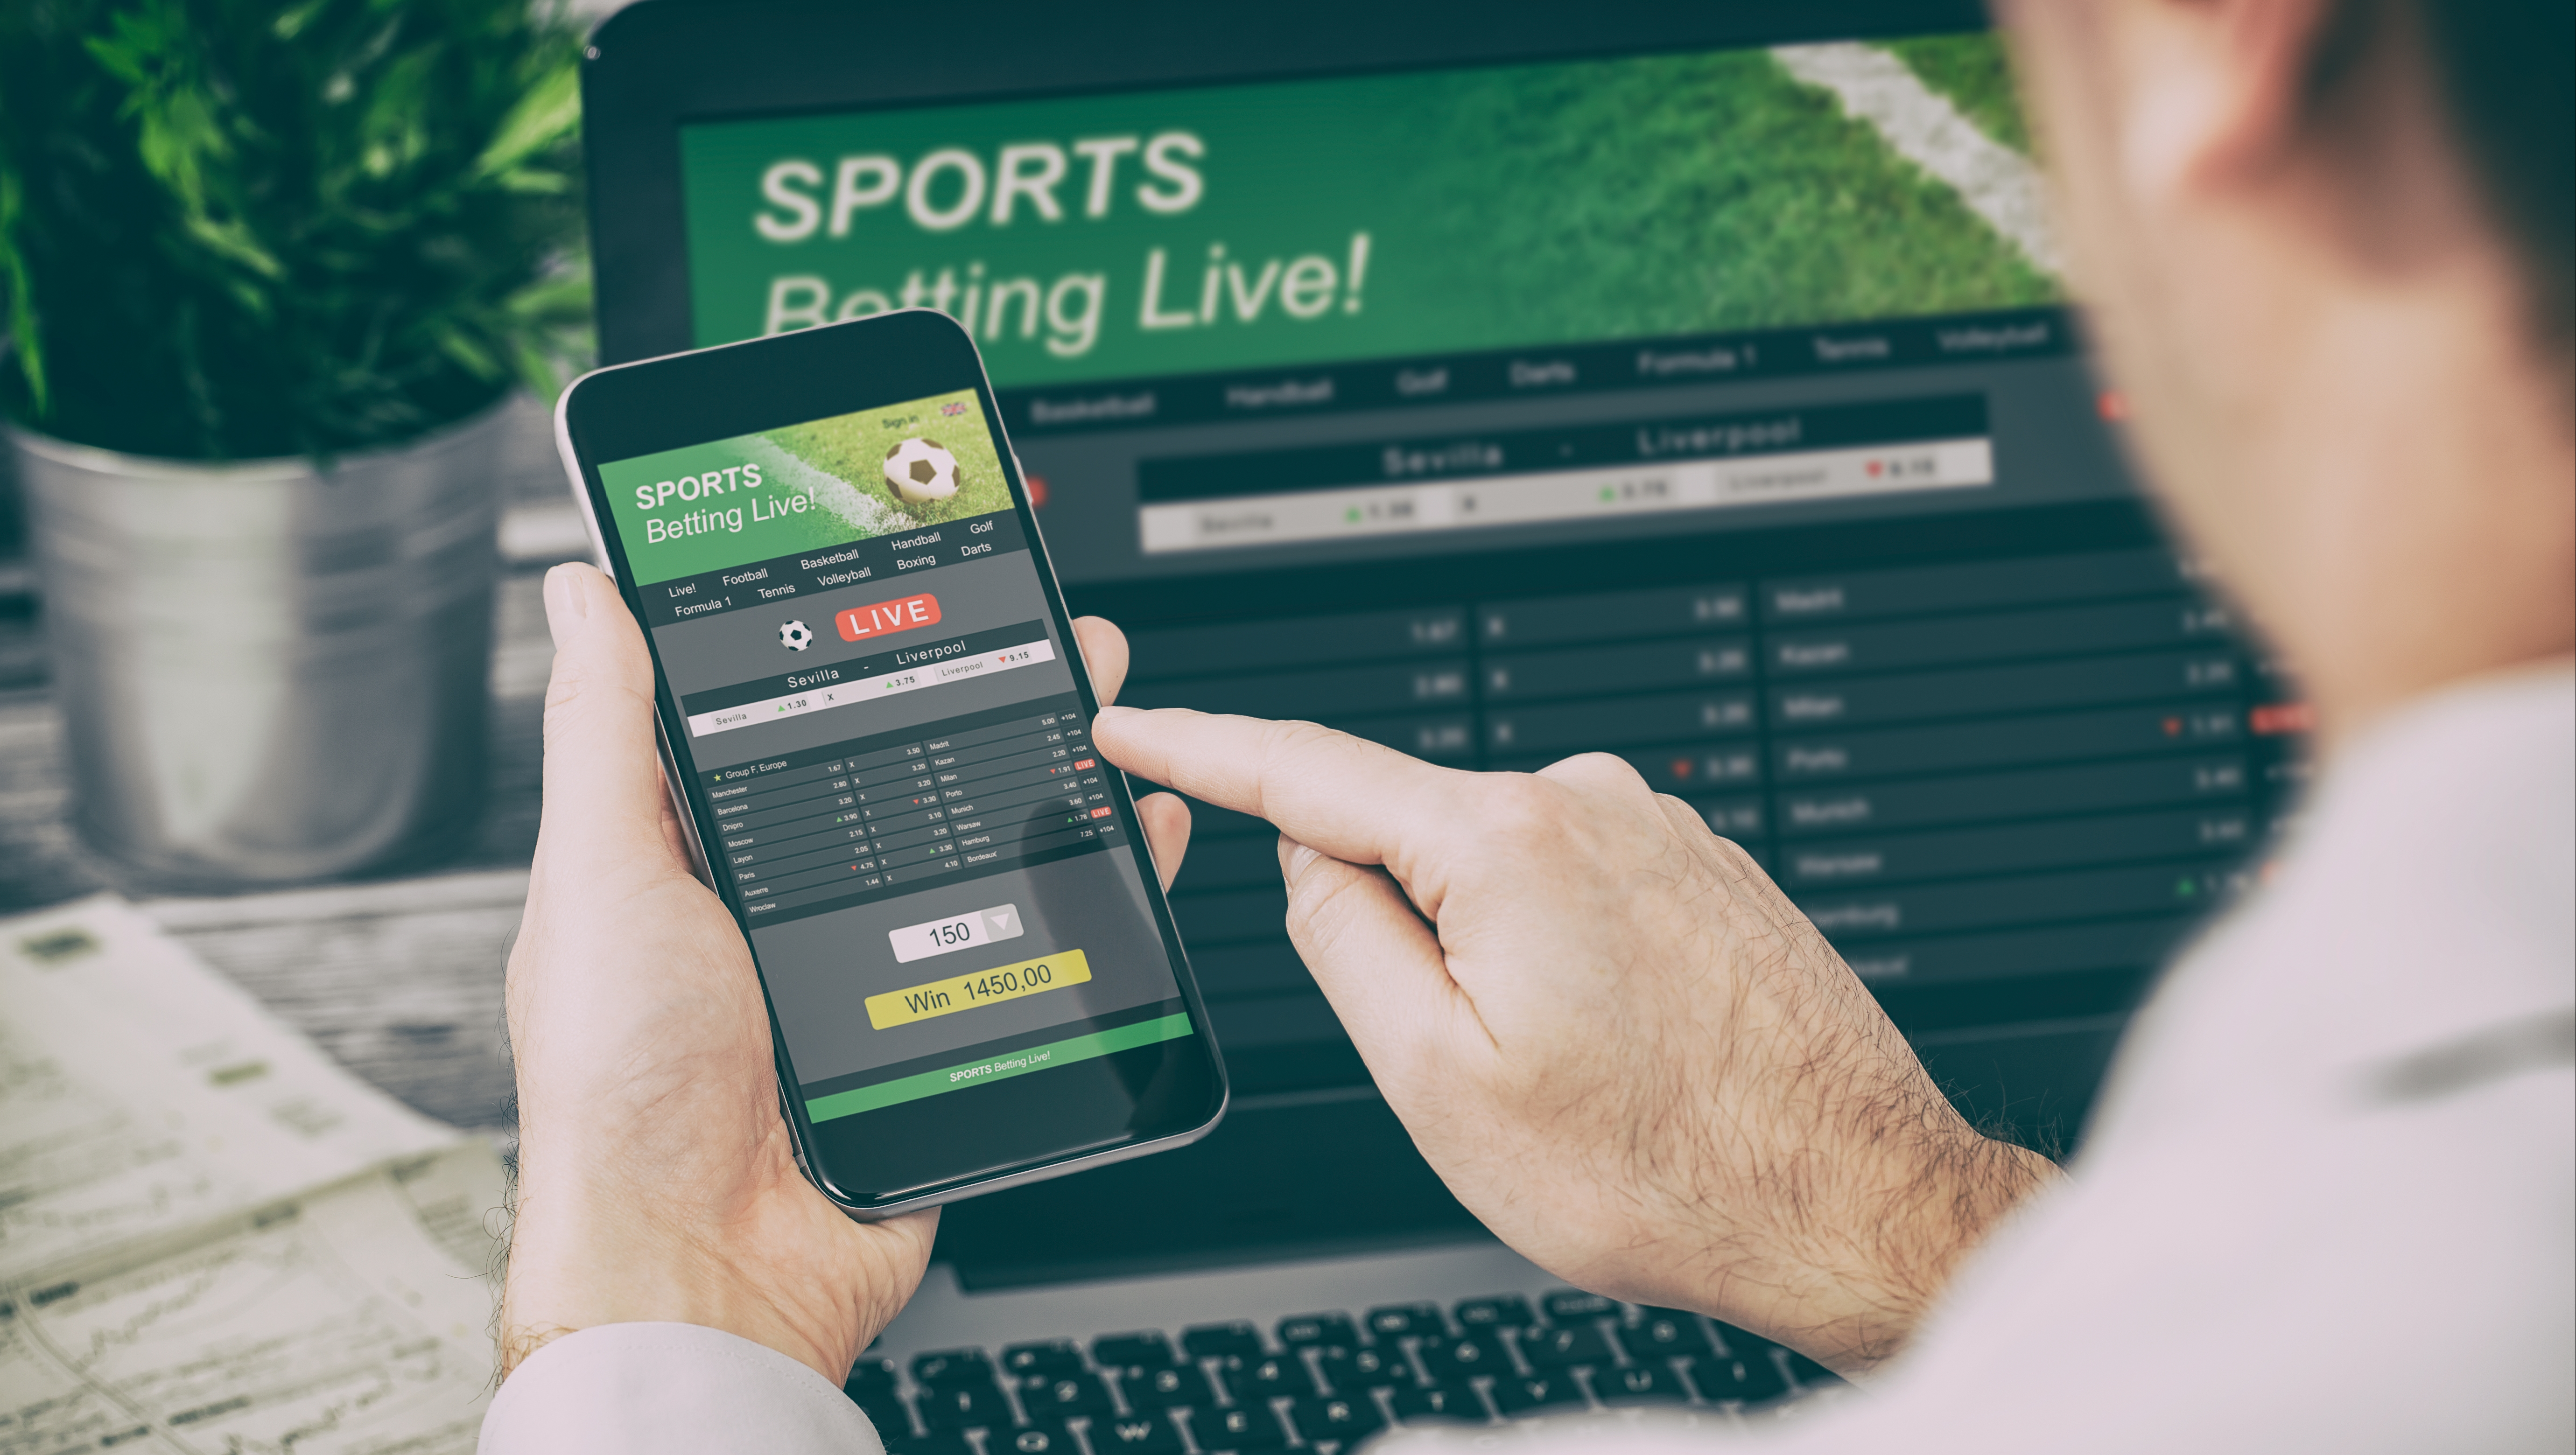 University researchers are calling for betting firms to implement a warning system to label the relative risks of different football bets, to enable gamblers to judge the likelihood of losing their money and avoid getting into debt.